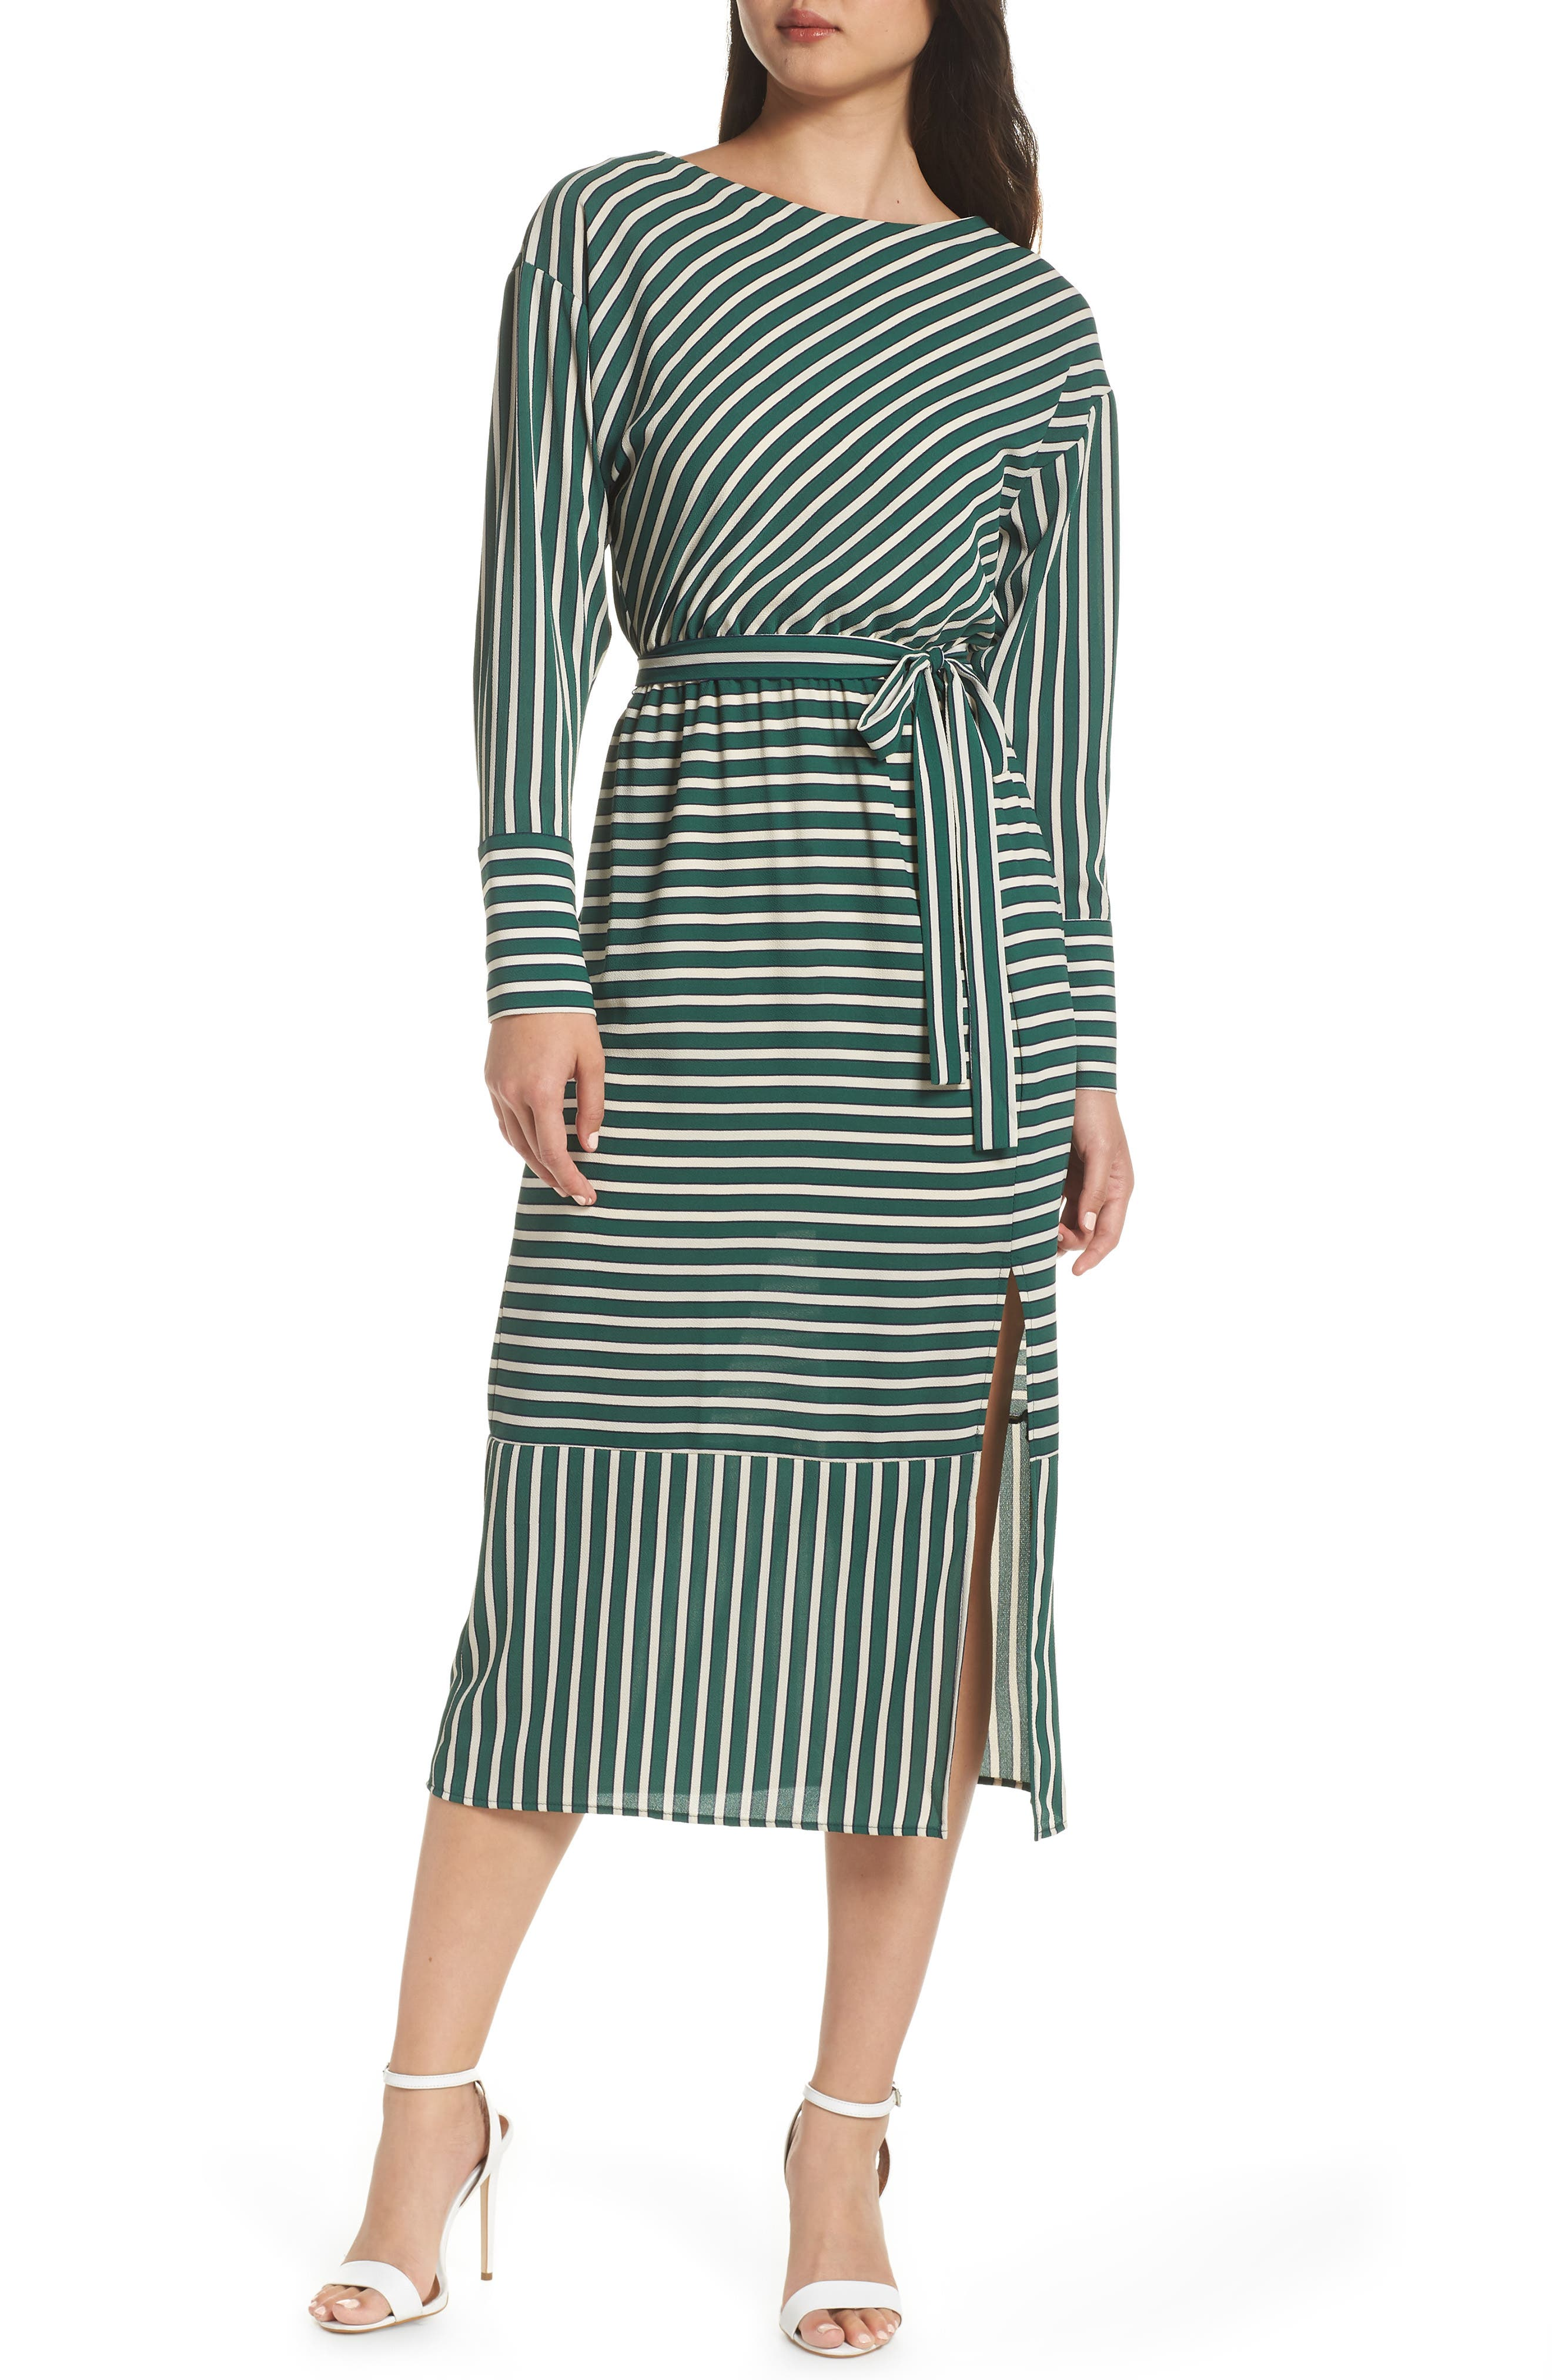 CHARLES HENRY Striped Midi Dress in Hunter Stripe